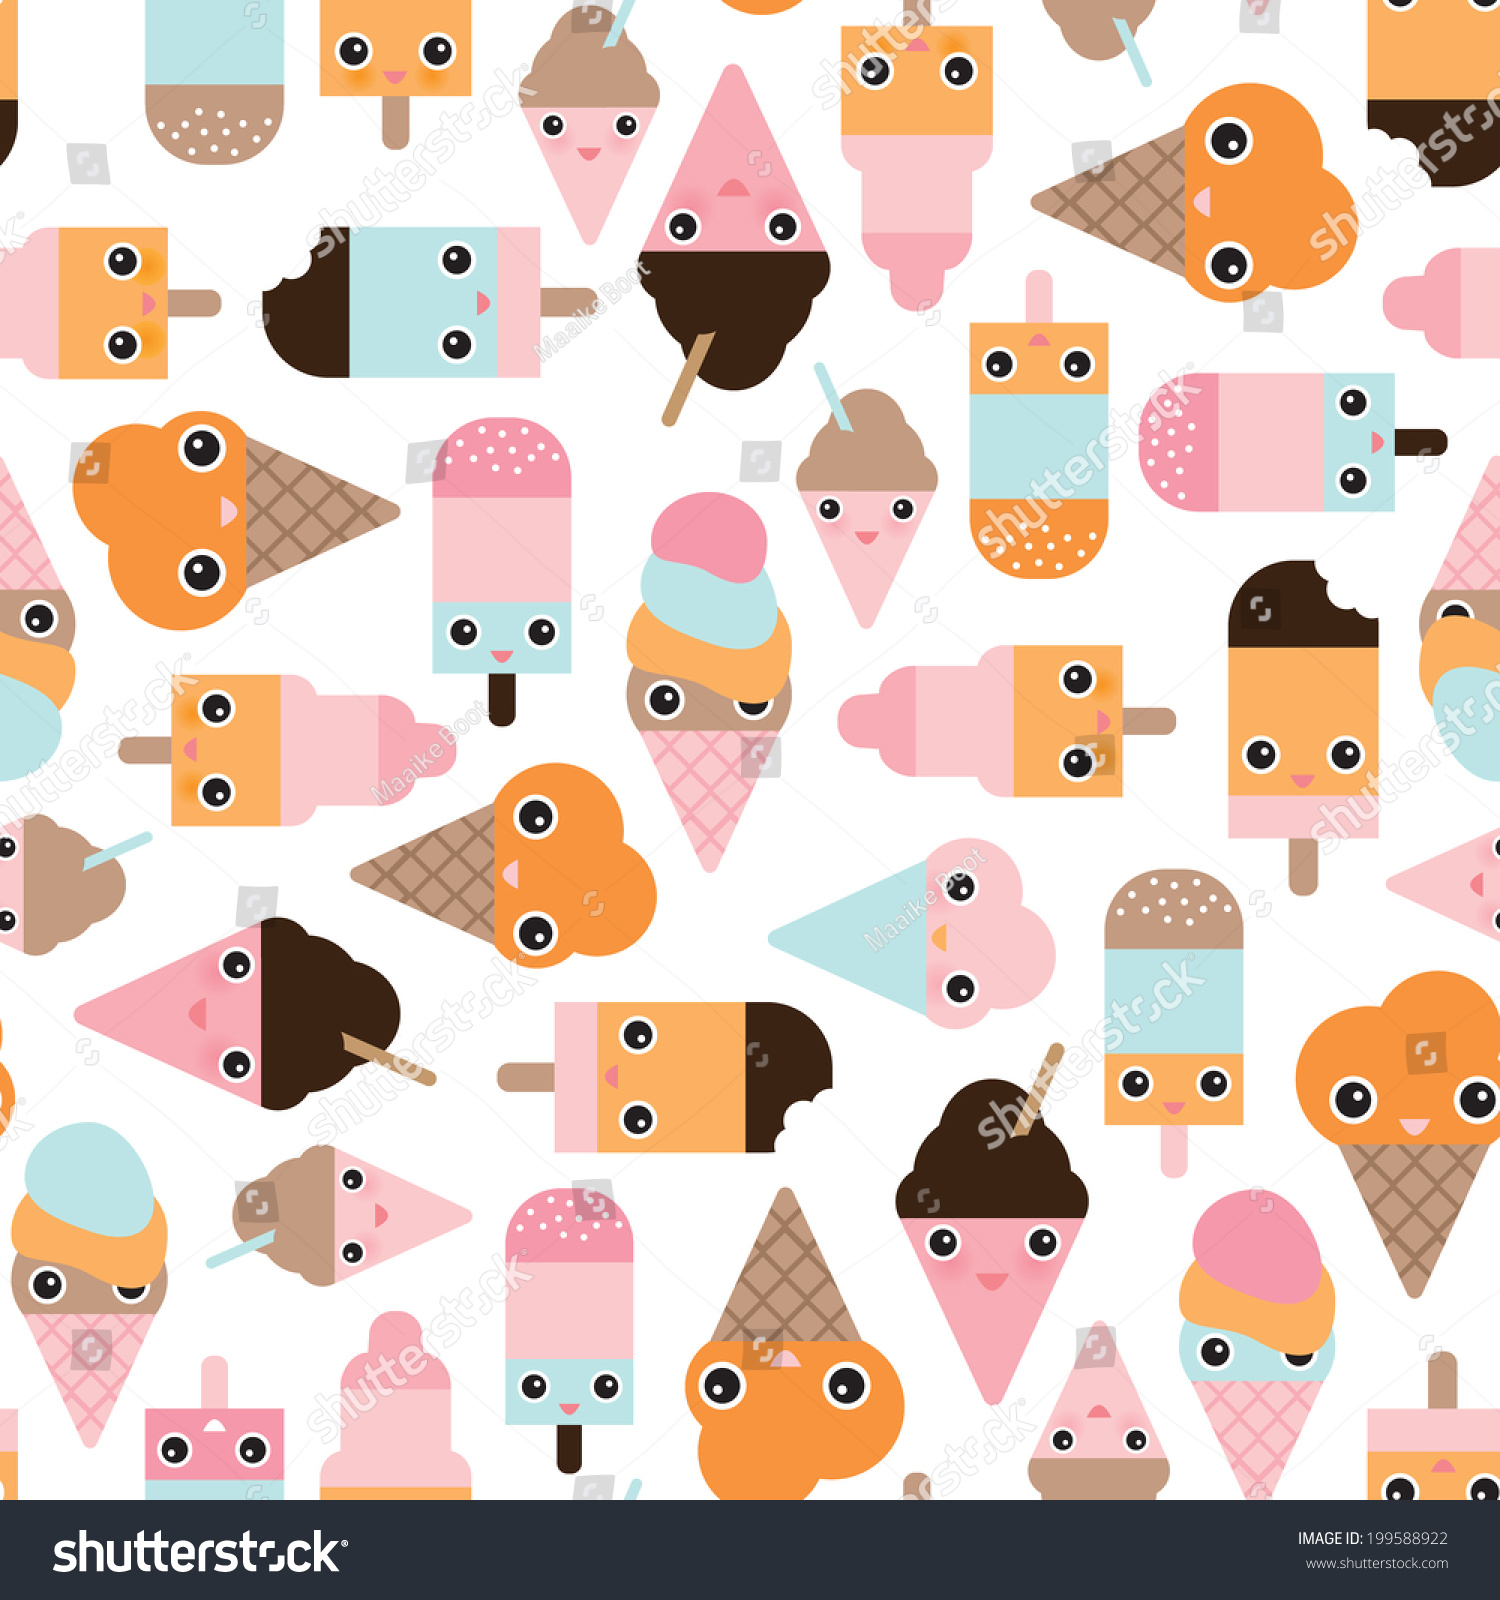 Pattern Cute Colorful Ice Cream Textiles Stock Vector: Seamless Summer Ice Cream Popsicle Cute Stock Vector